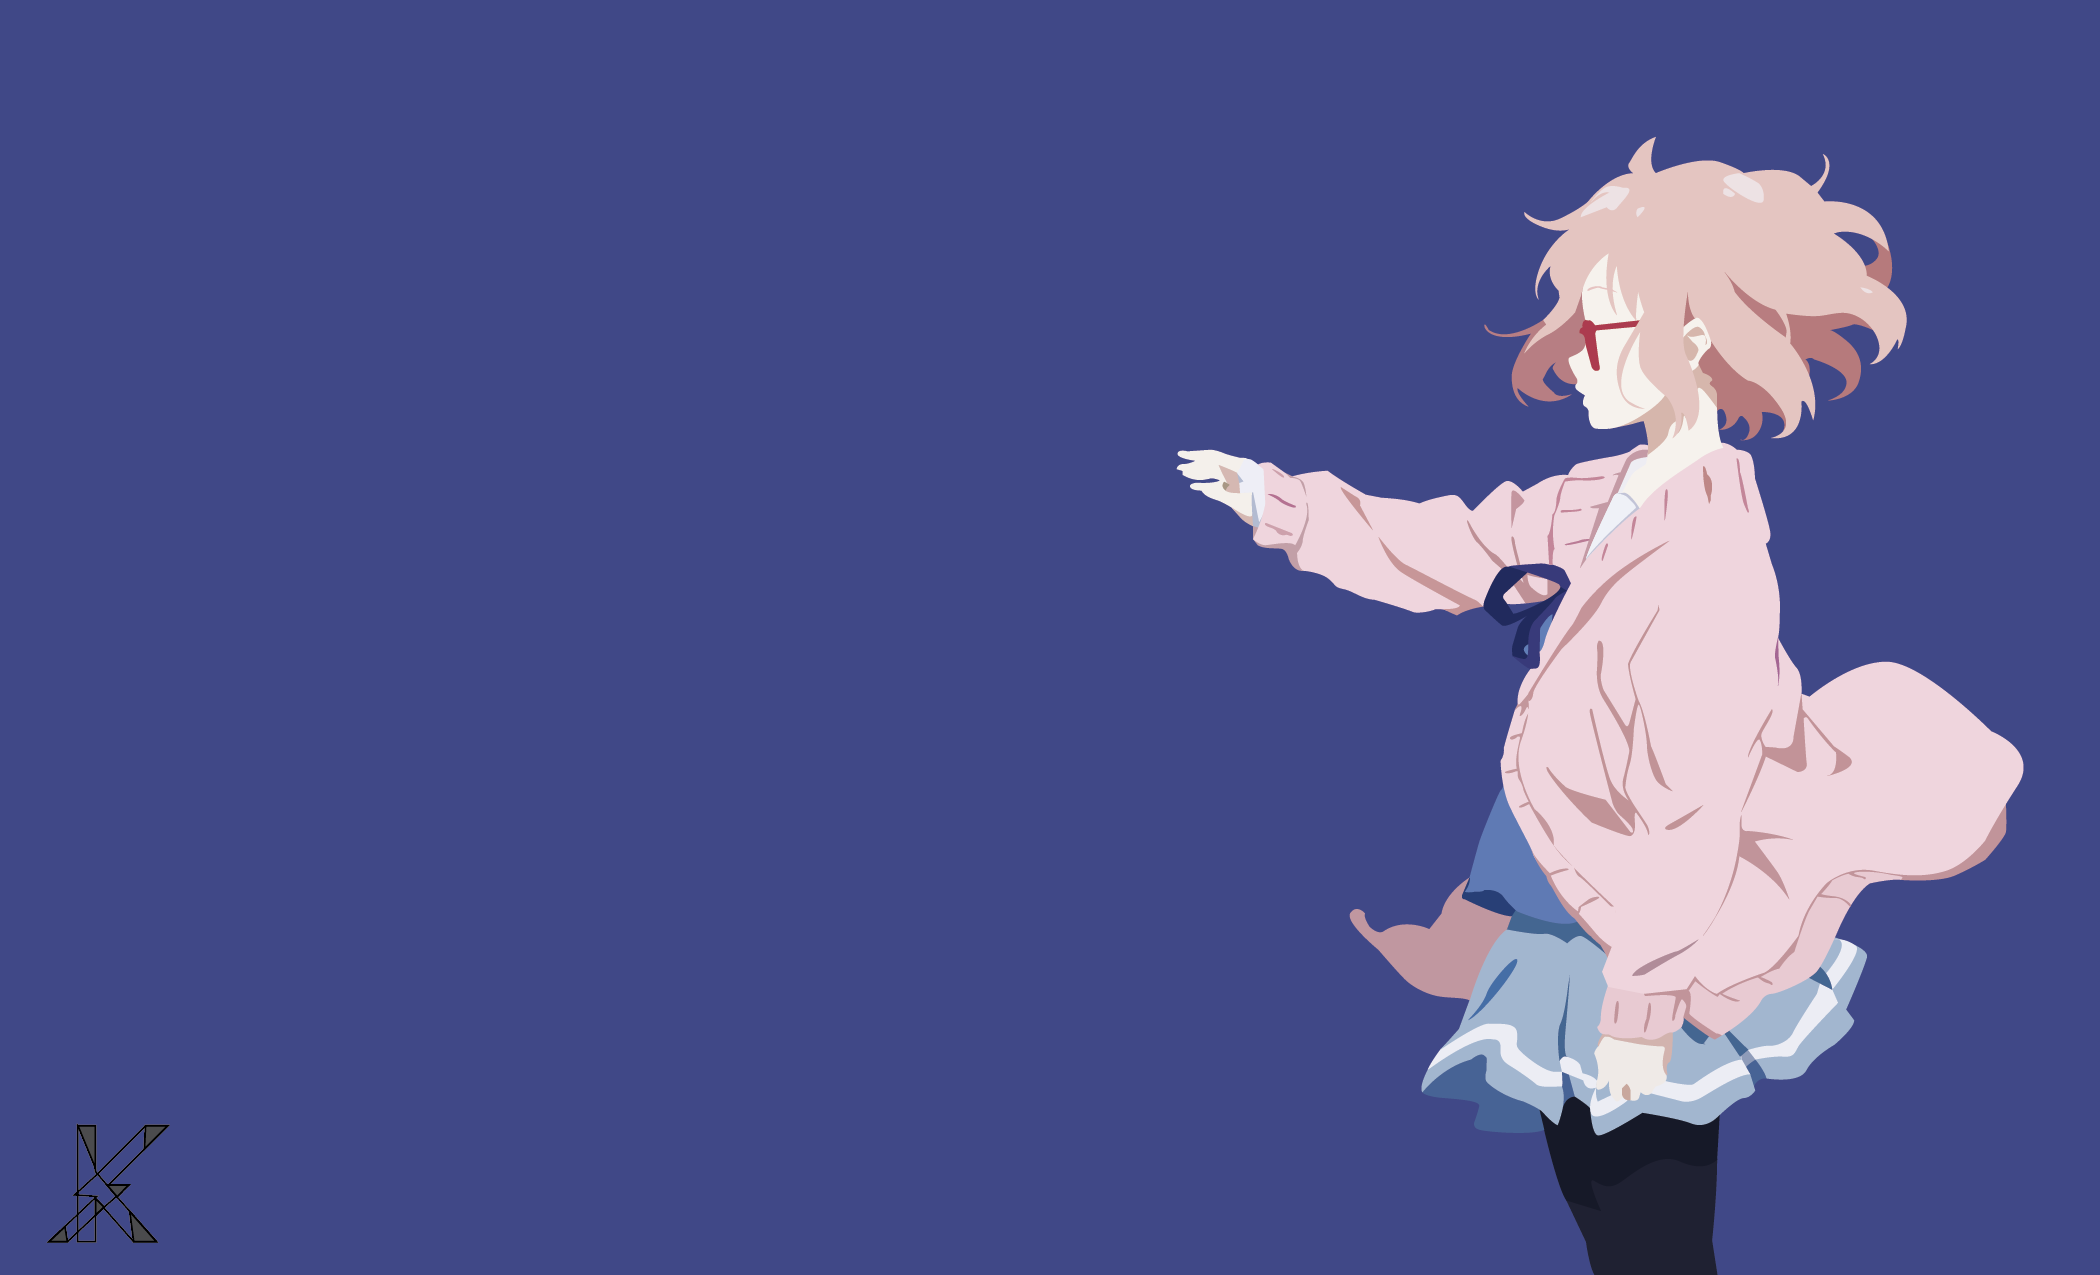 Beyond The Boundary Hd Wallpaper Background Image 2100x1275